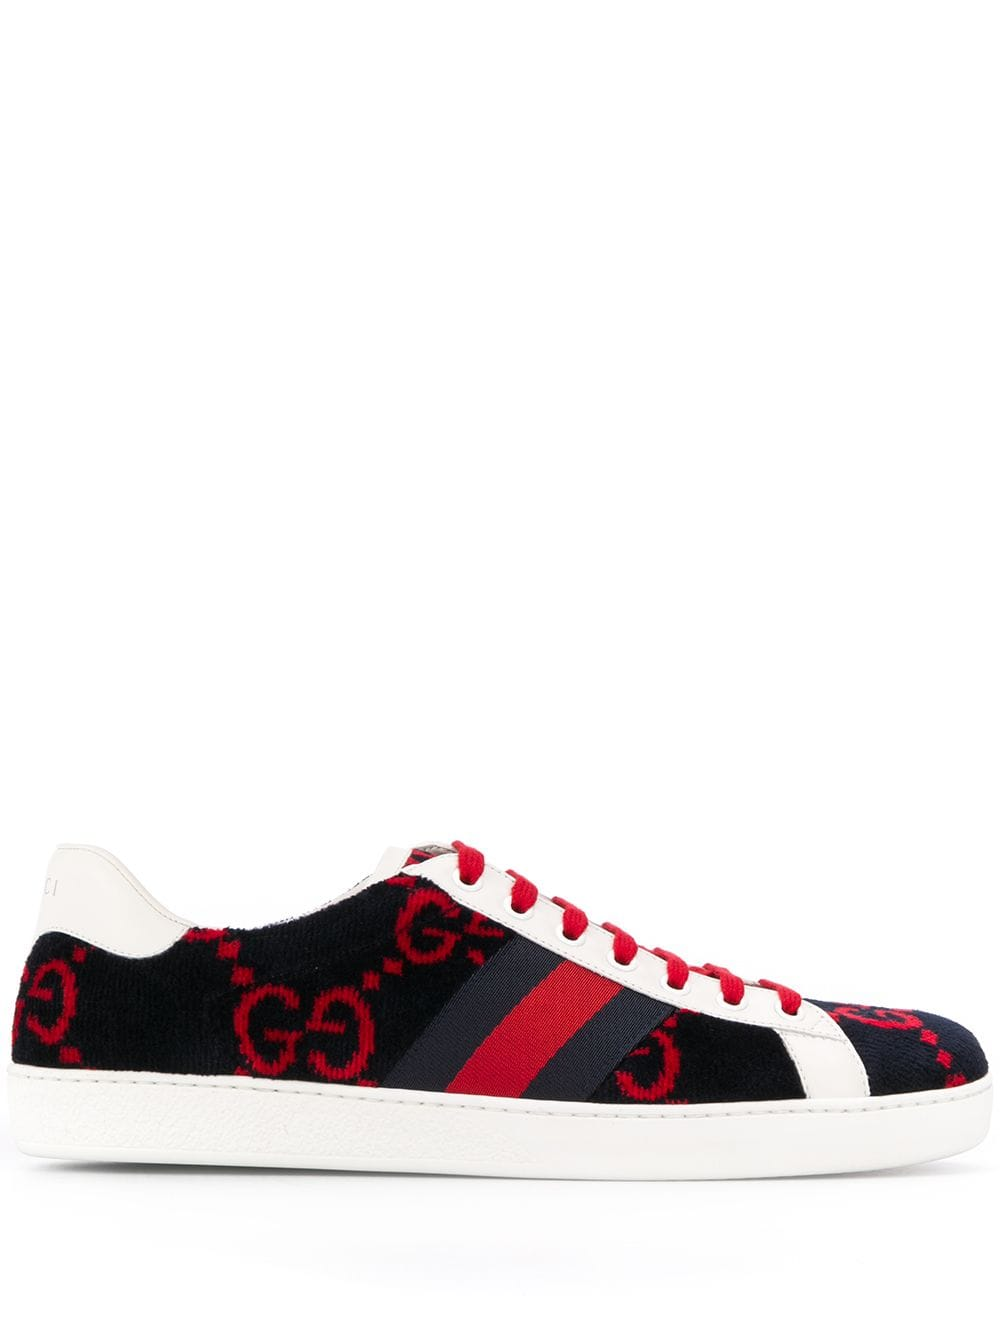 6fe6034c4 GUCCI GUCCI GG LOW-TOP SNEAKERS - BLUE. #gucci #shoes | Gucci in ...